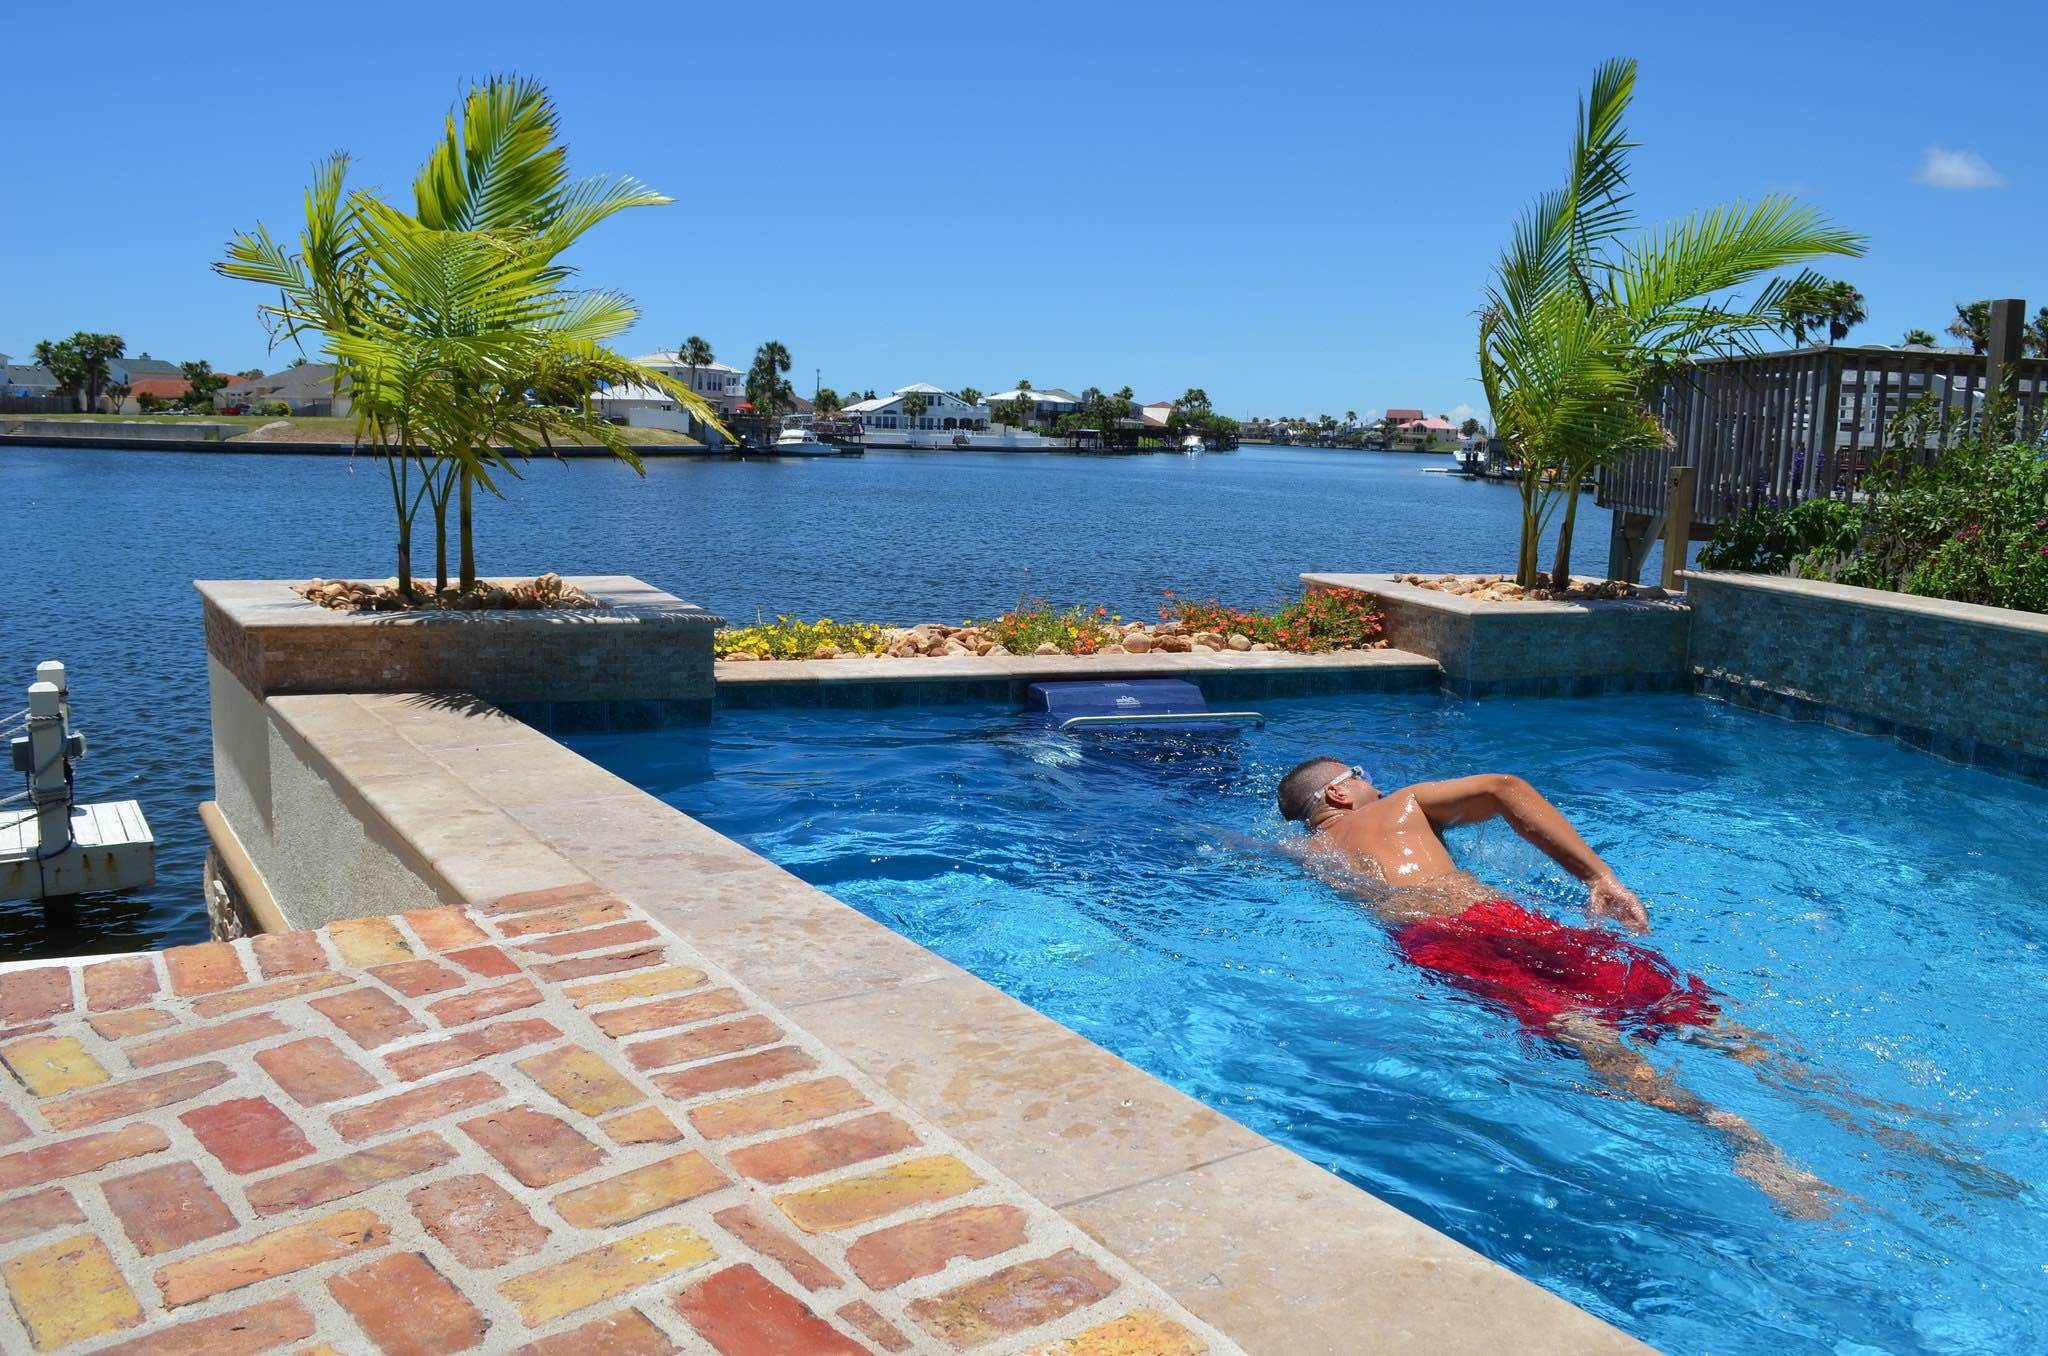 Endless Pools & U.S. Masters Swimming Want You to Swim at Home